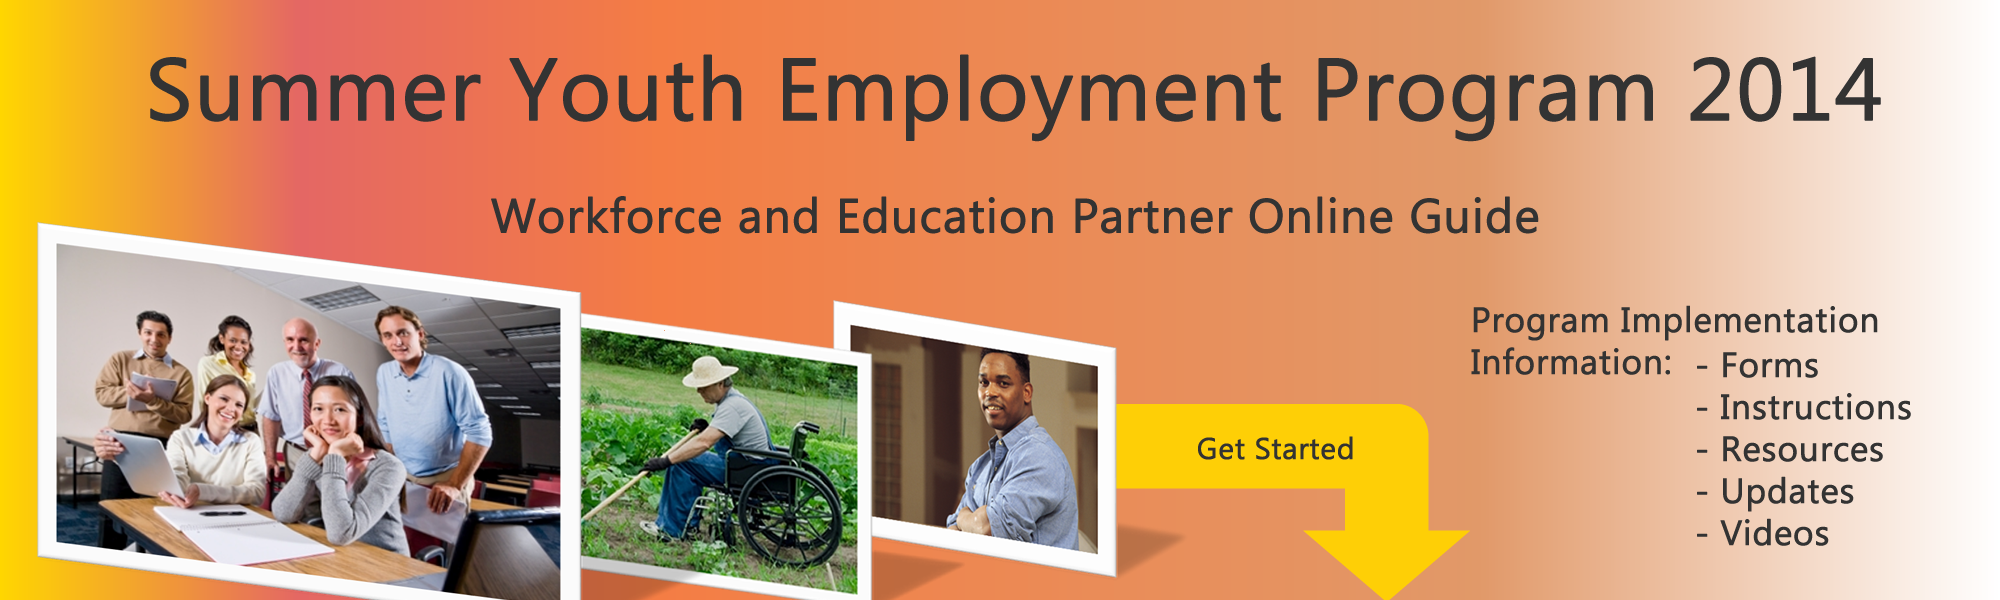 Get started with the Workforce and Education Partner Online Guide.